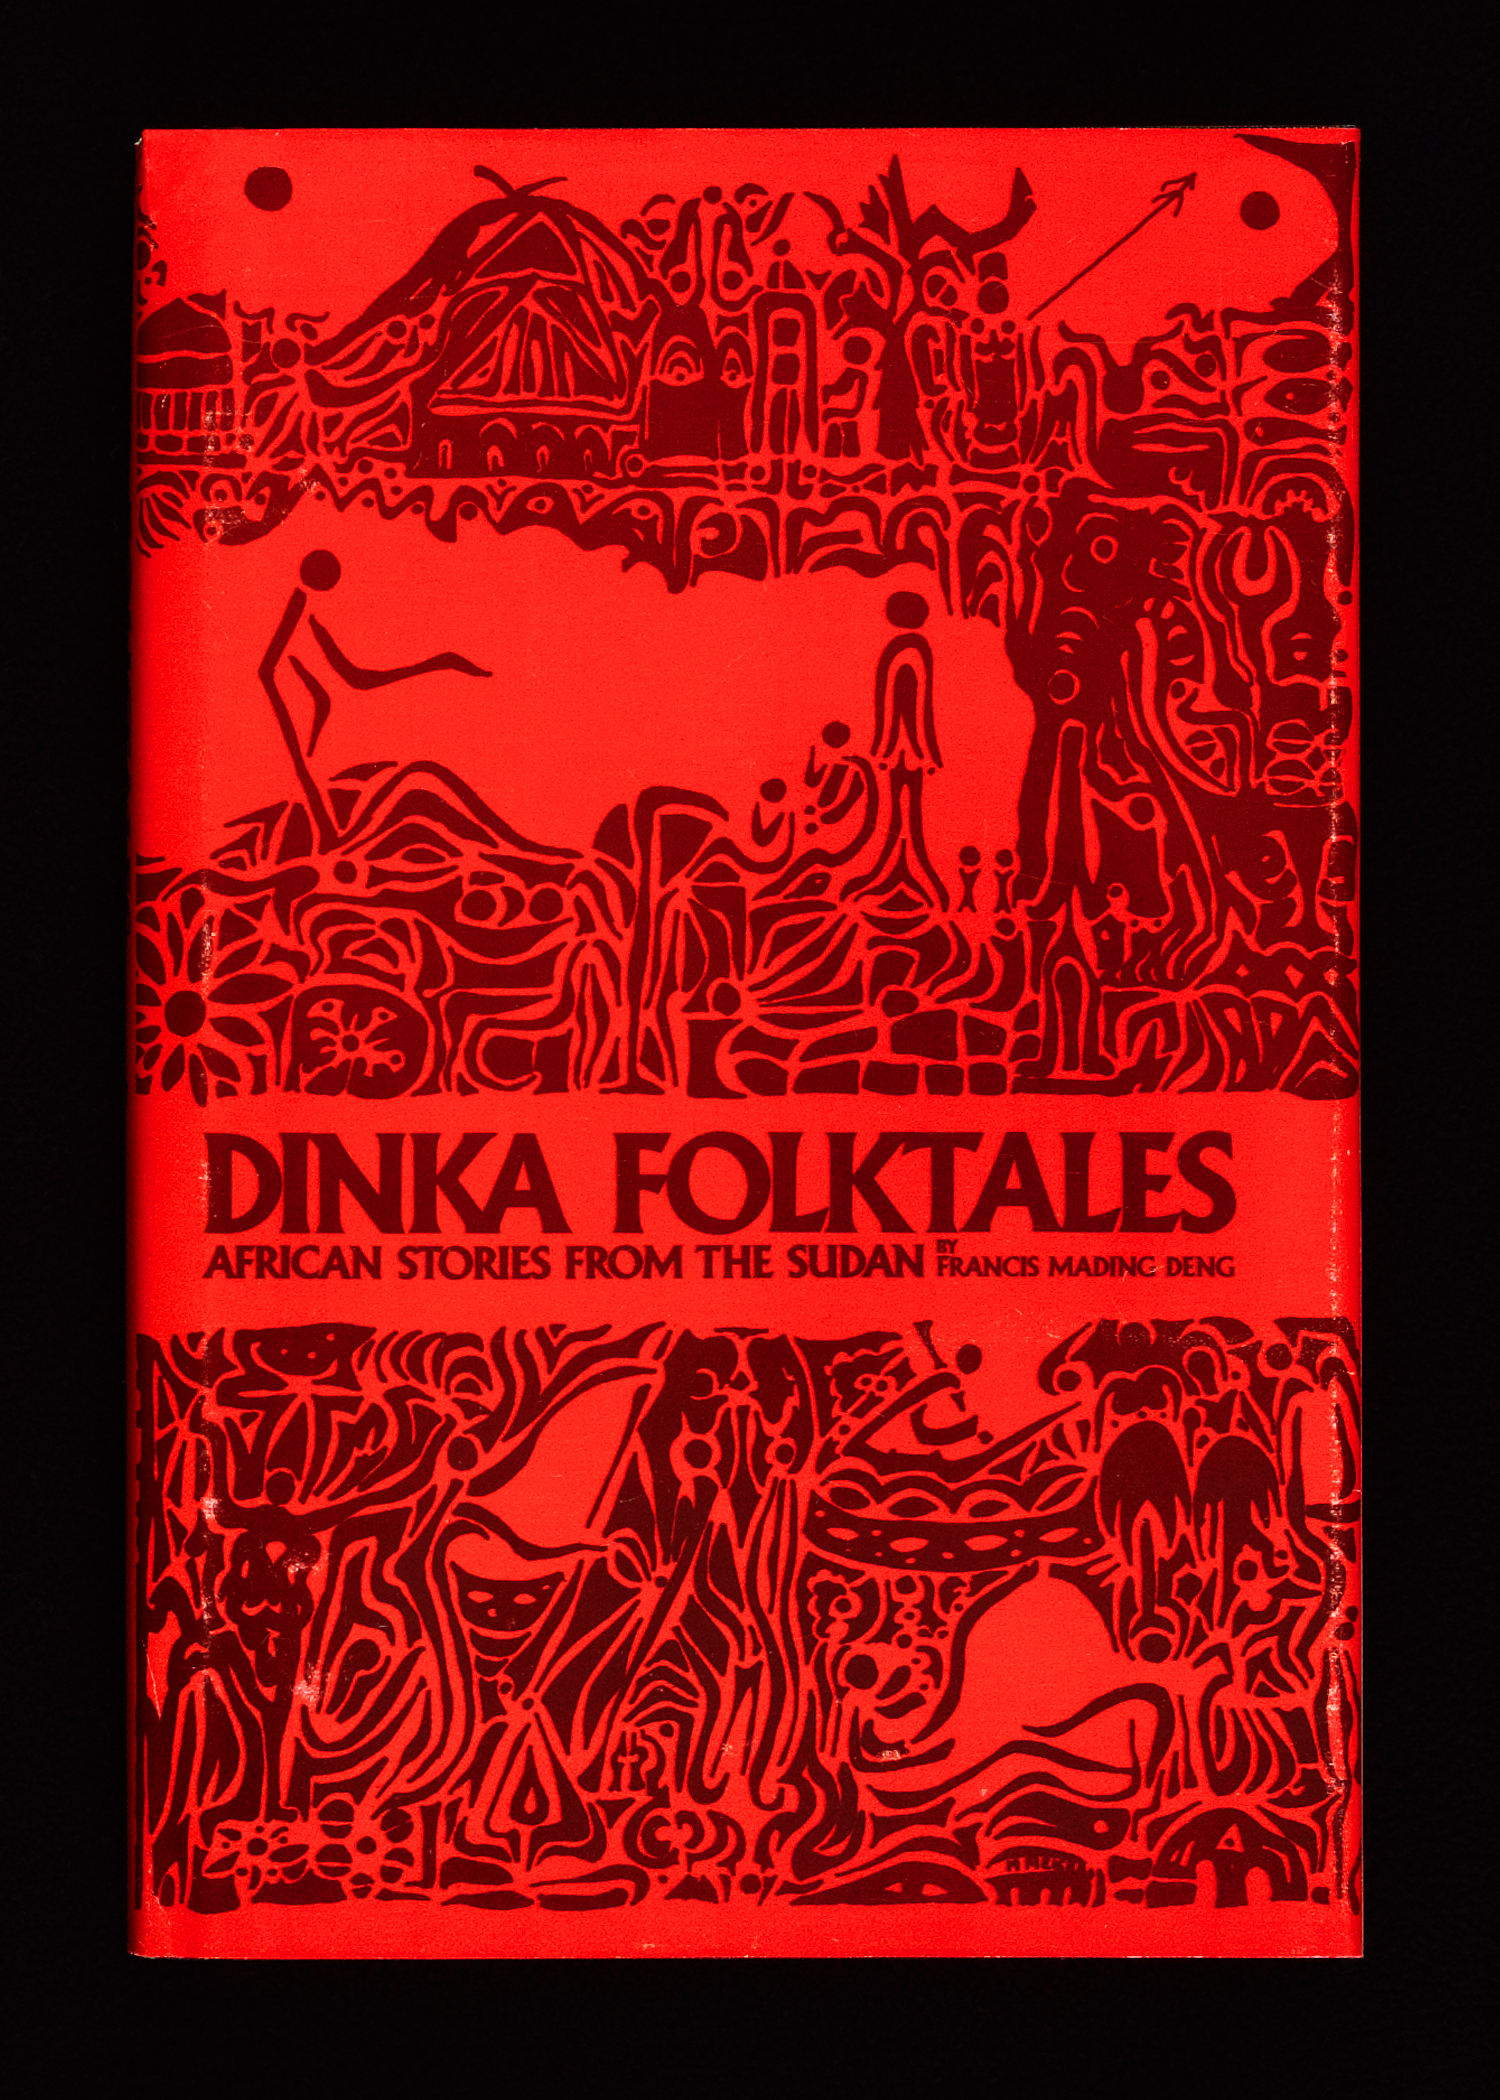 """DINKA BEDTIME STORIES"" (book cover)"